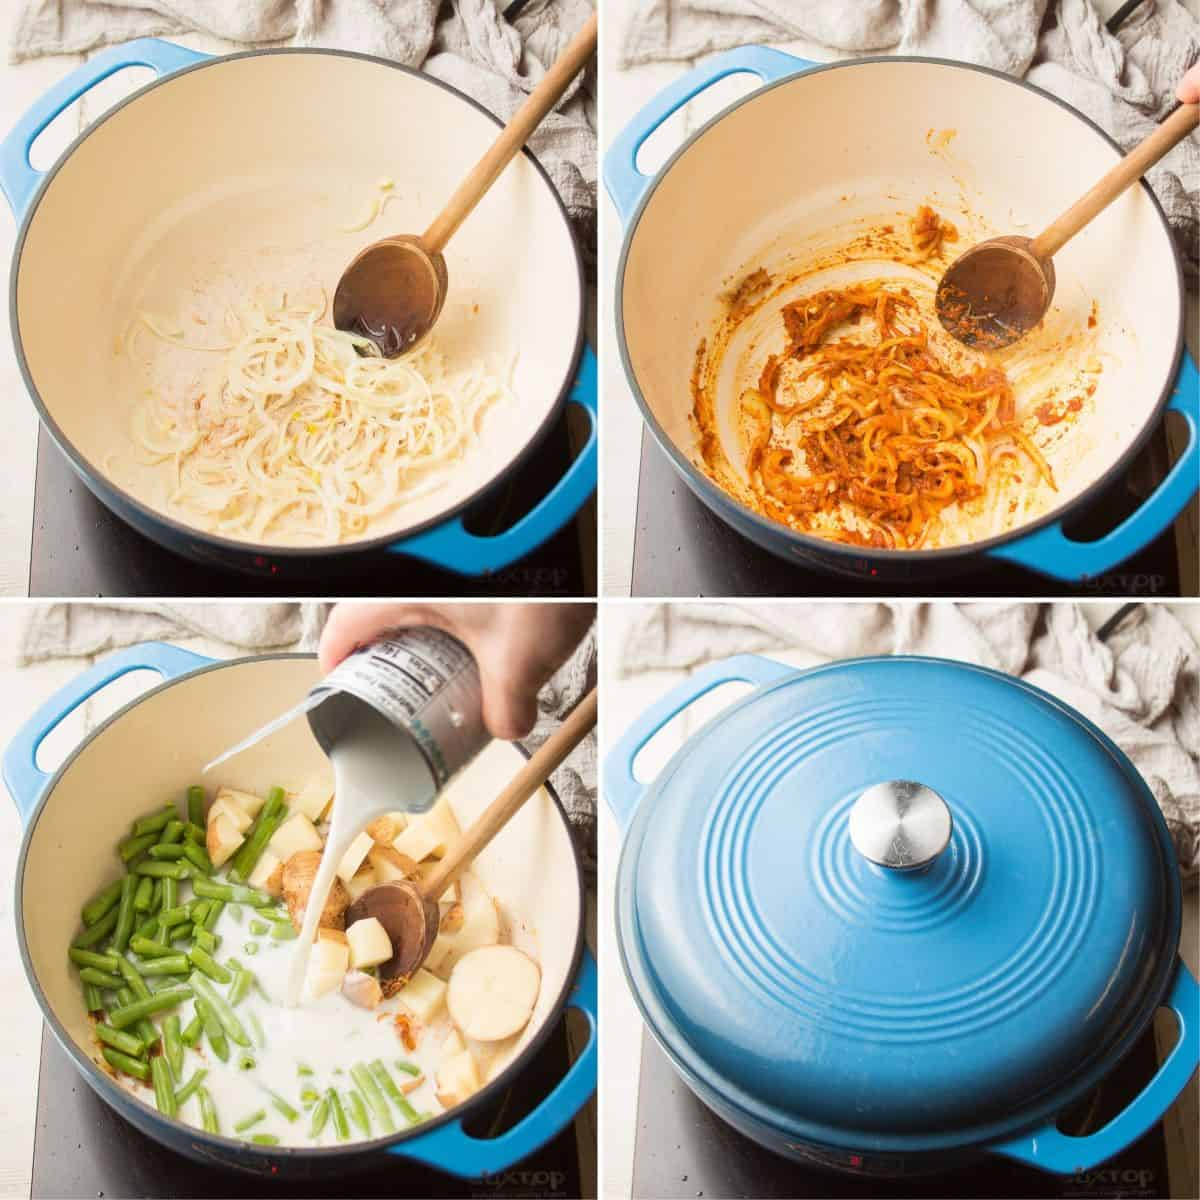 Collage Showing First Four Steps for Making Yellow Curry: Sweat Onions, Add Curry Paste, Add Potatoes, Green Beans and Coconut Milk, and Simmer while Covered